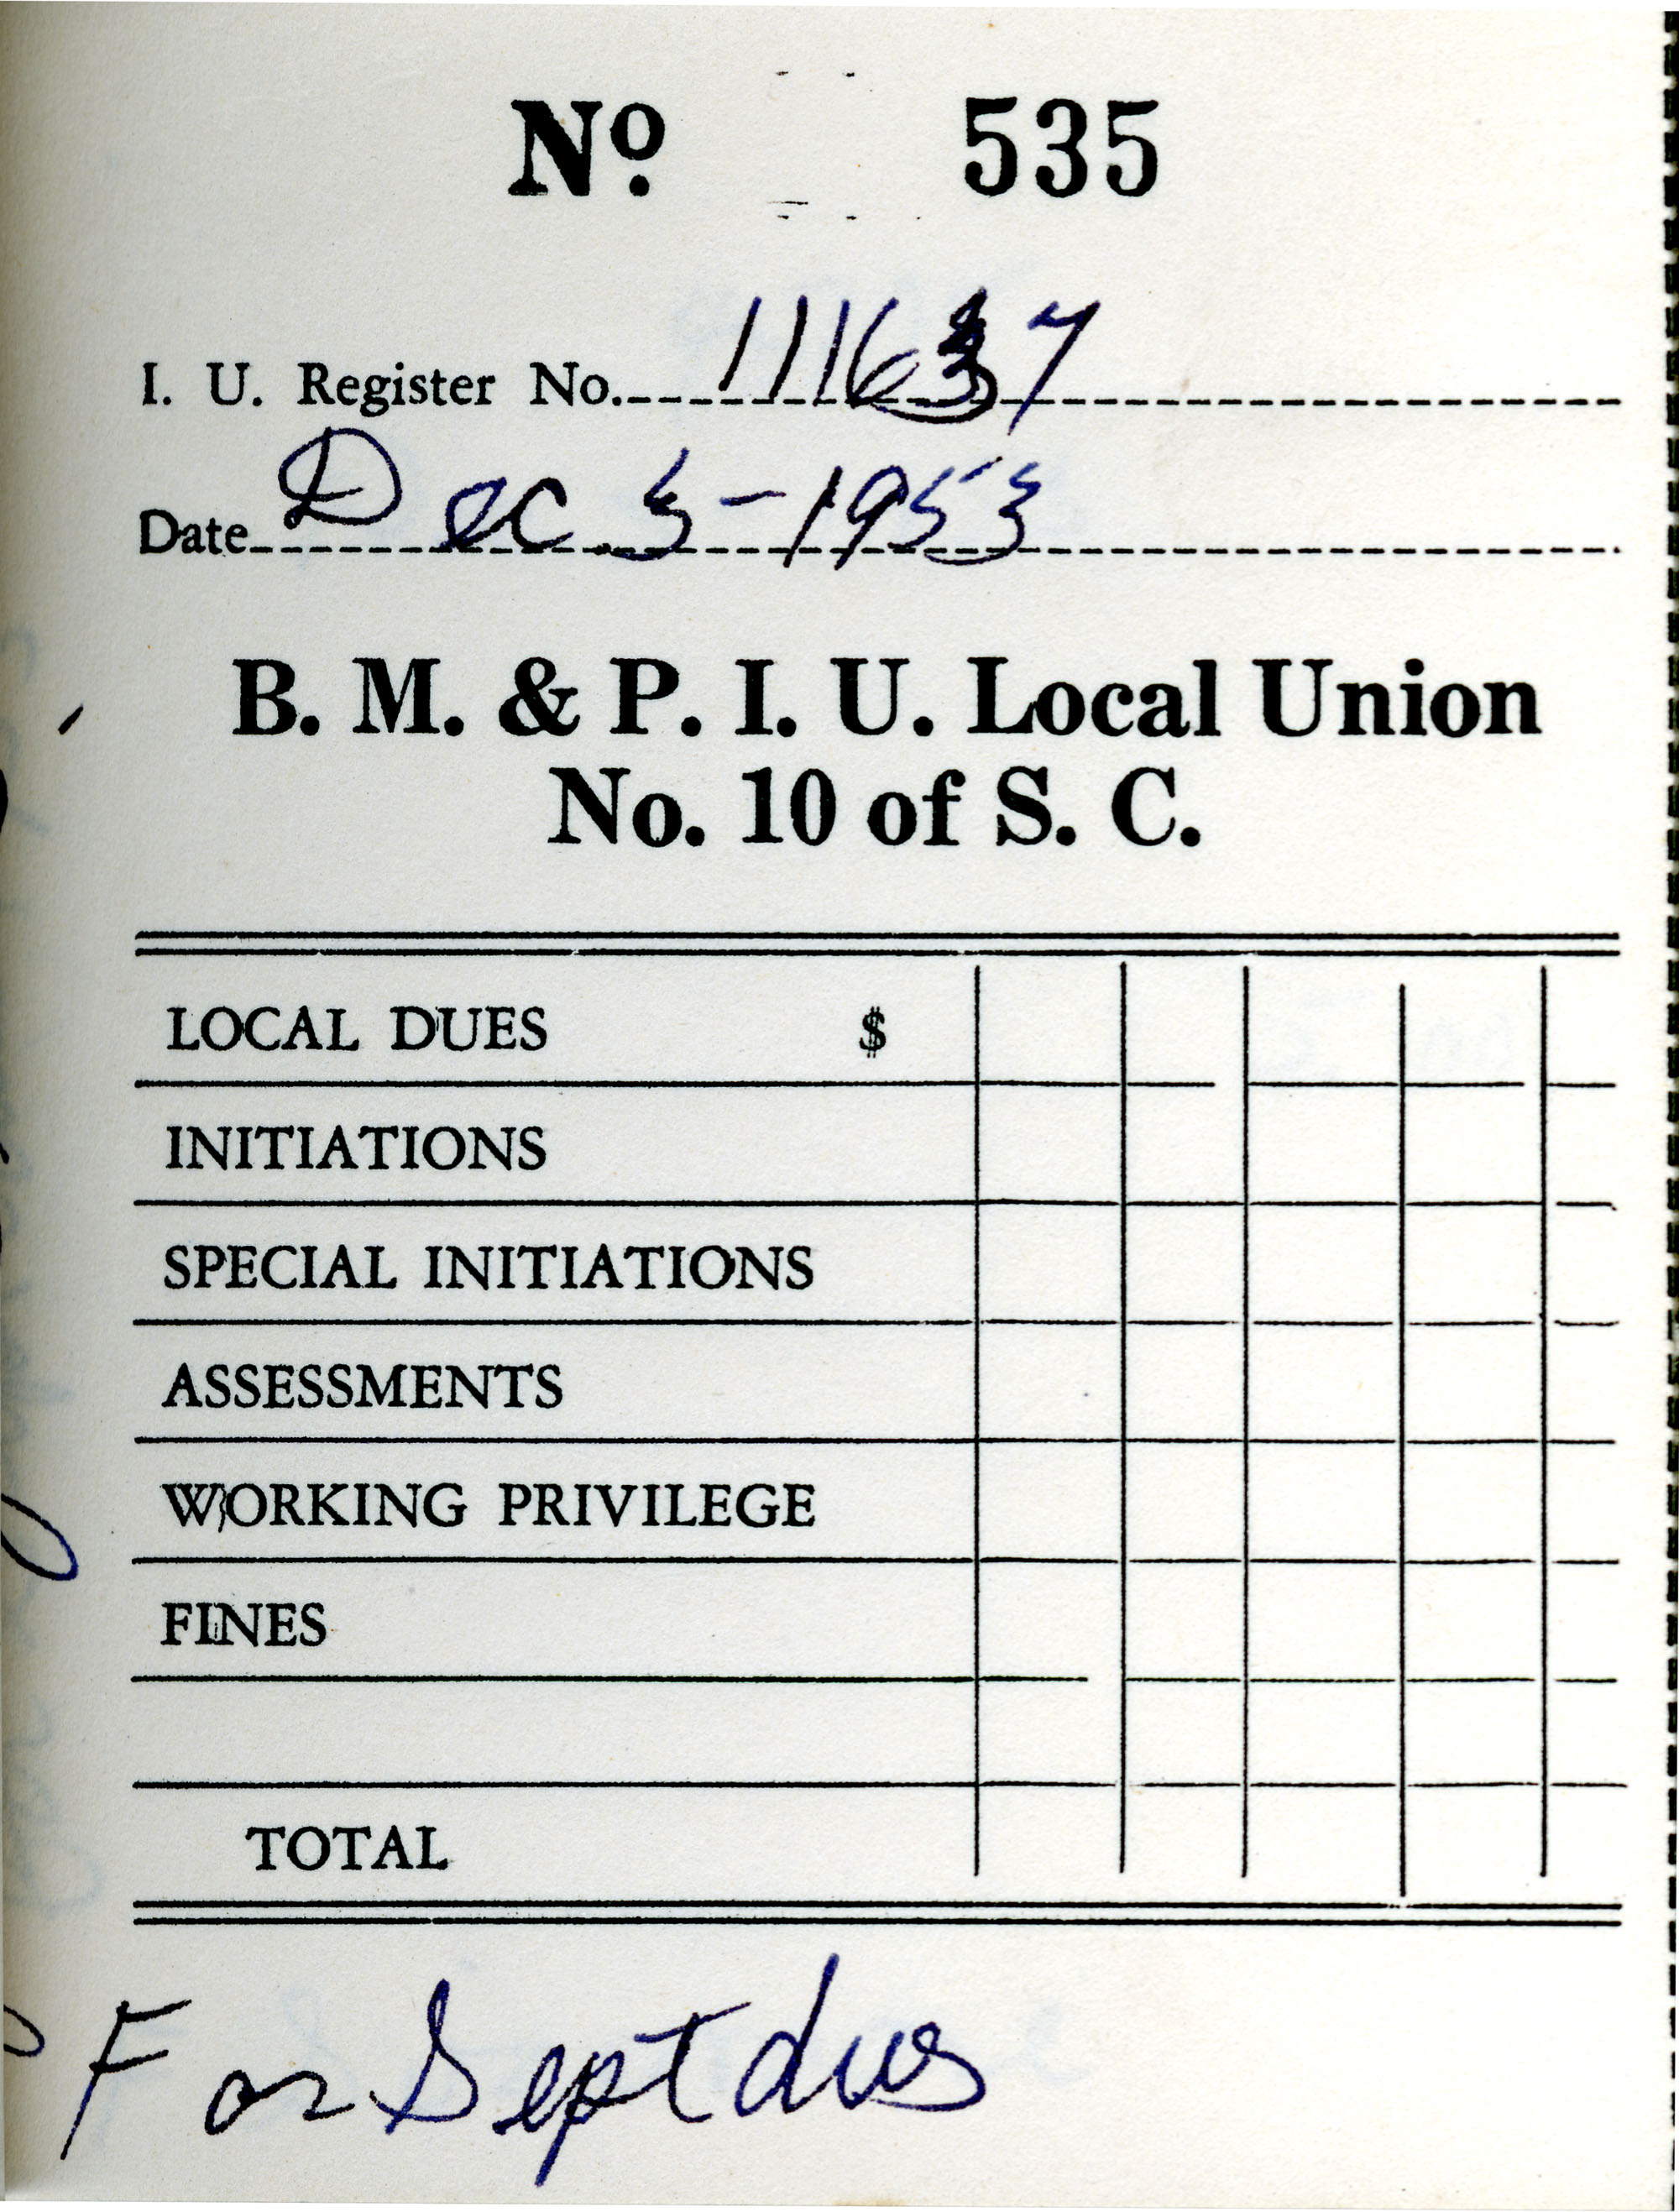 Receipt Book 2, Page 32